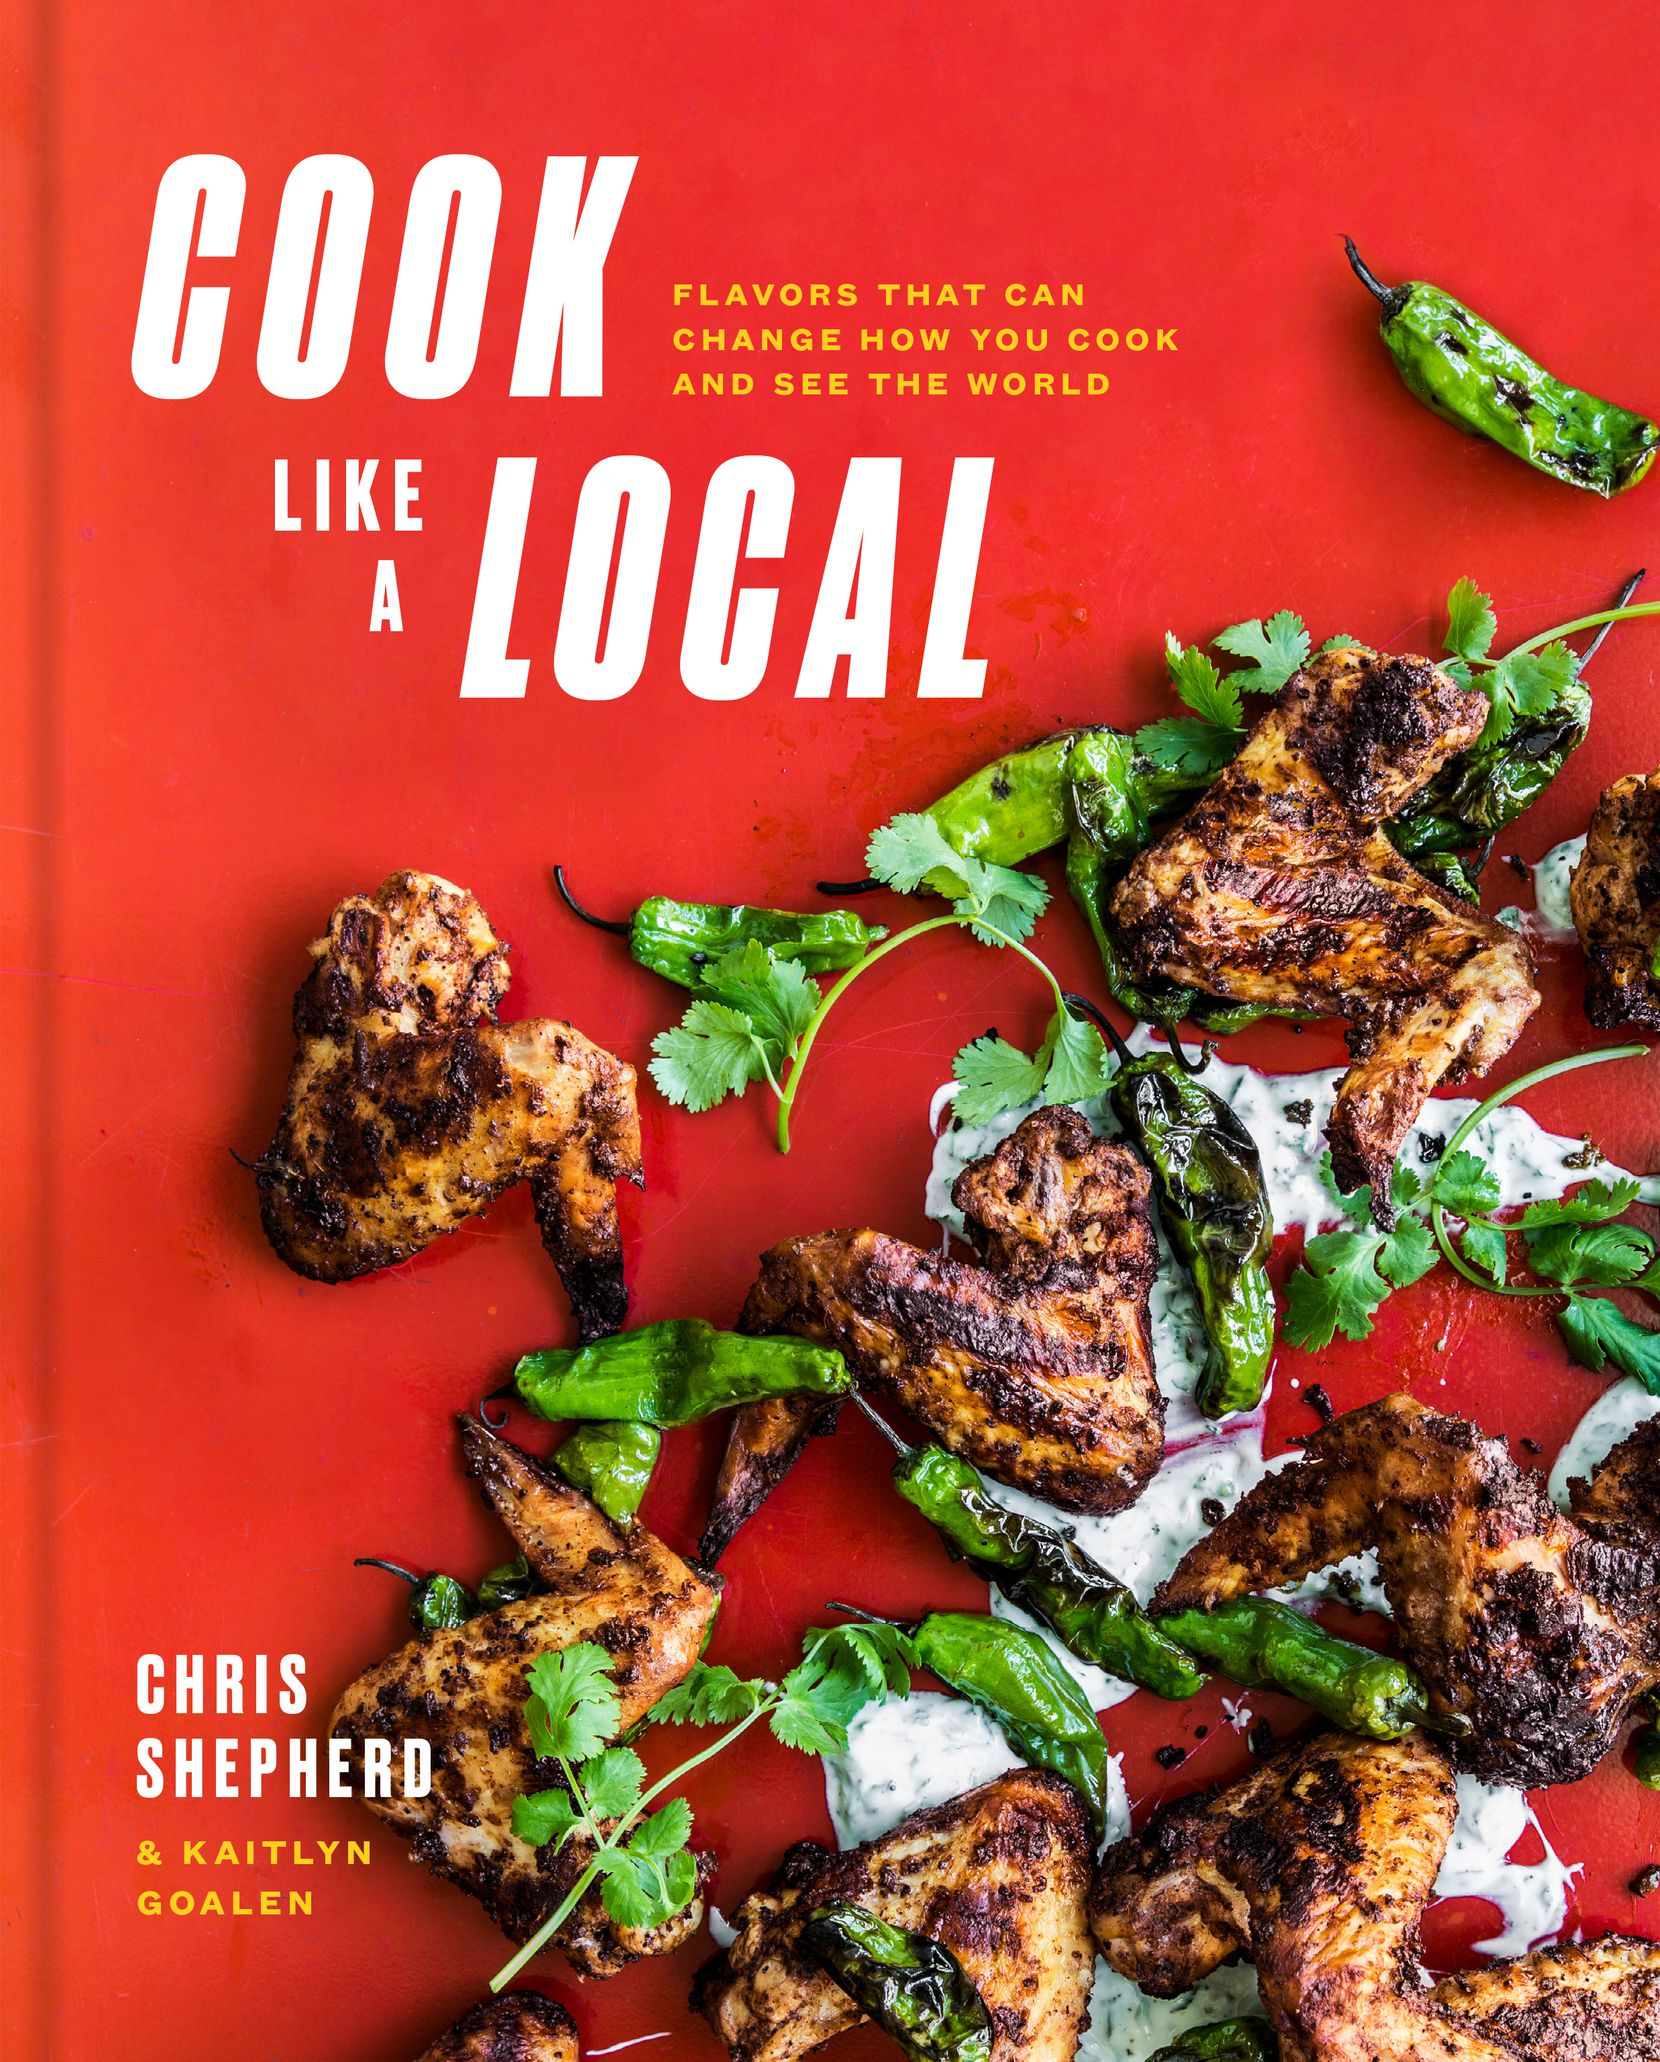 """Houston chef Chris Shepherd's new cookbook, """"Cook Like a Local: Flavors That Can Change How You Cook and See the World,"""" was co-written with Kaitlyn Goalen (Clarkson Potter, $35)."""